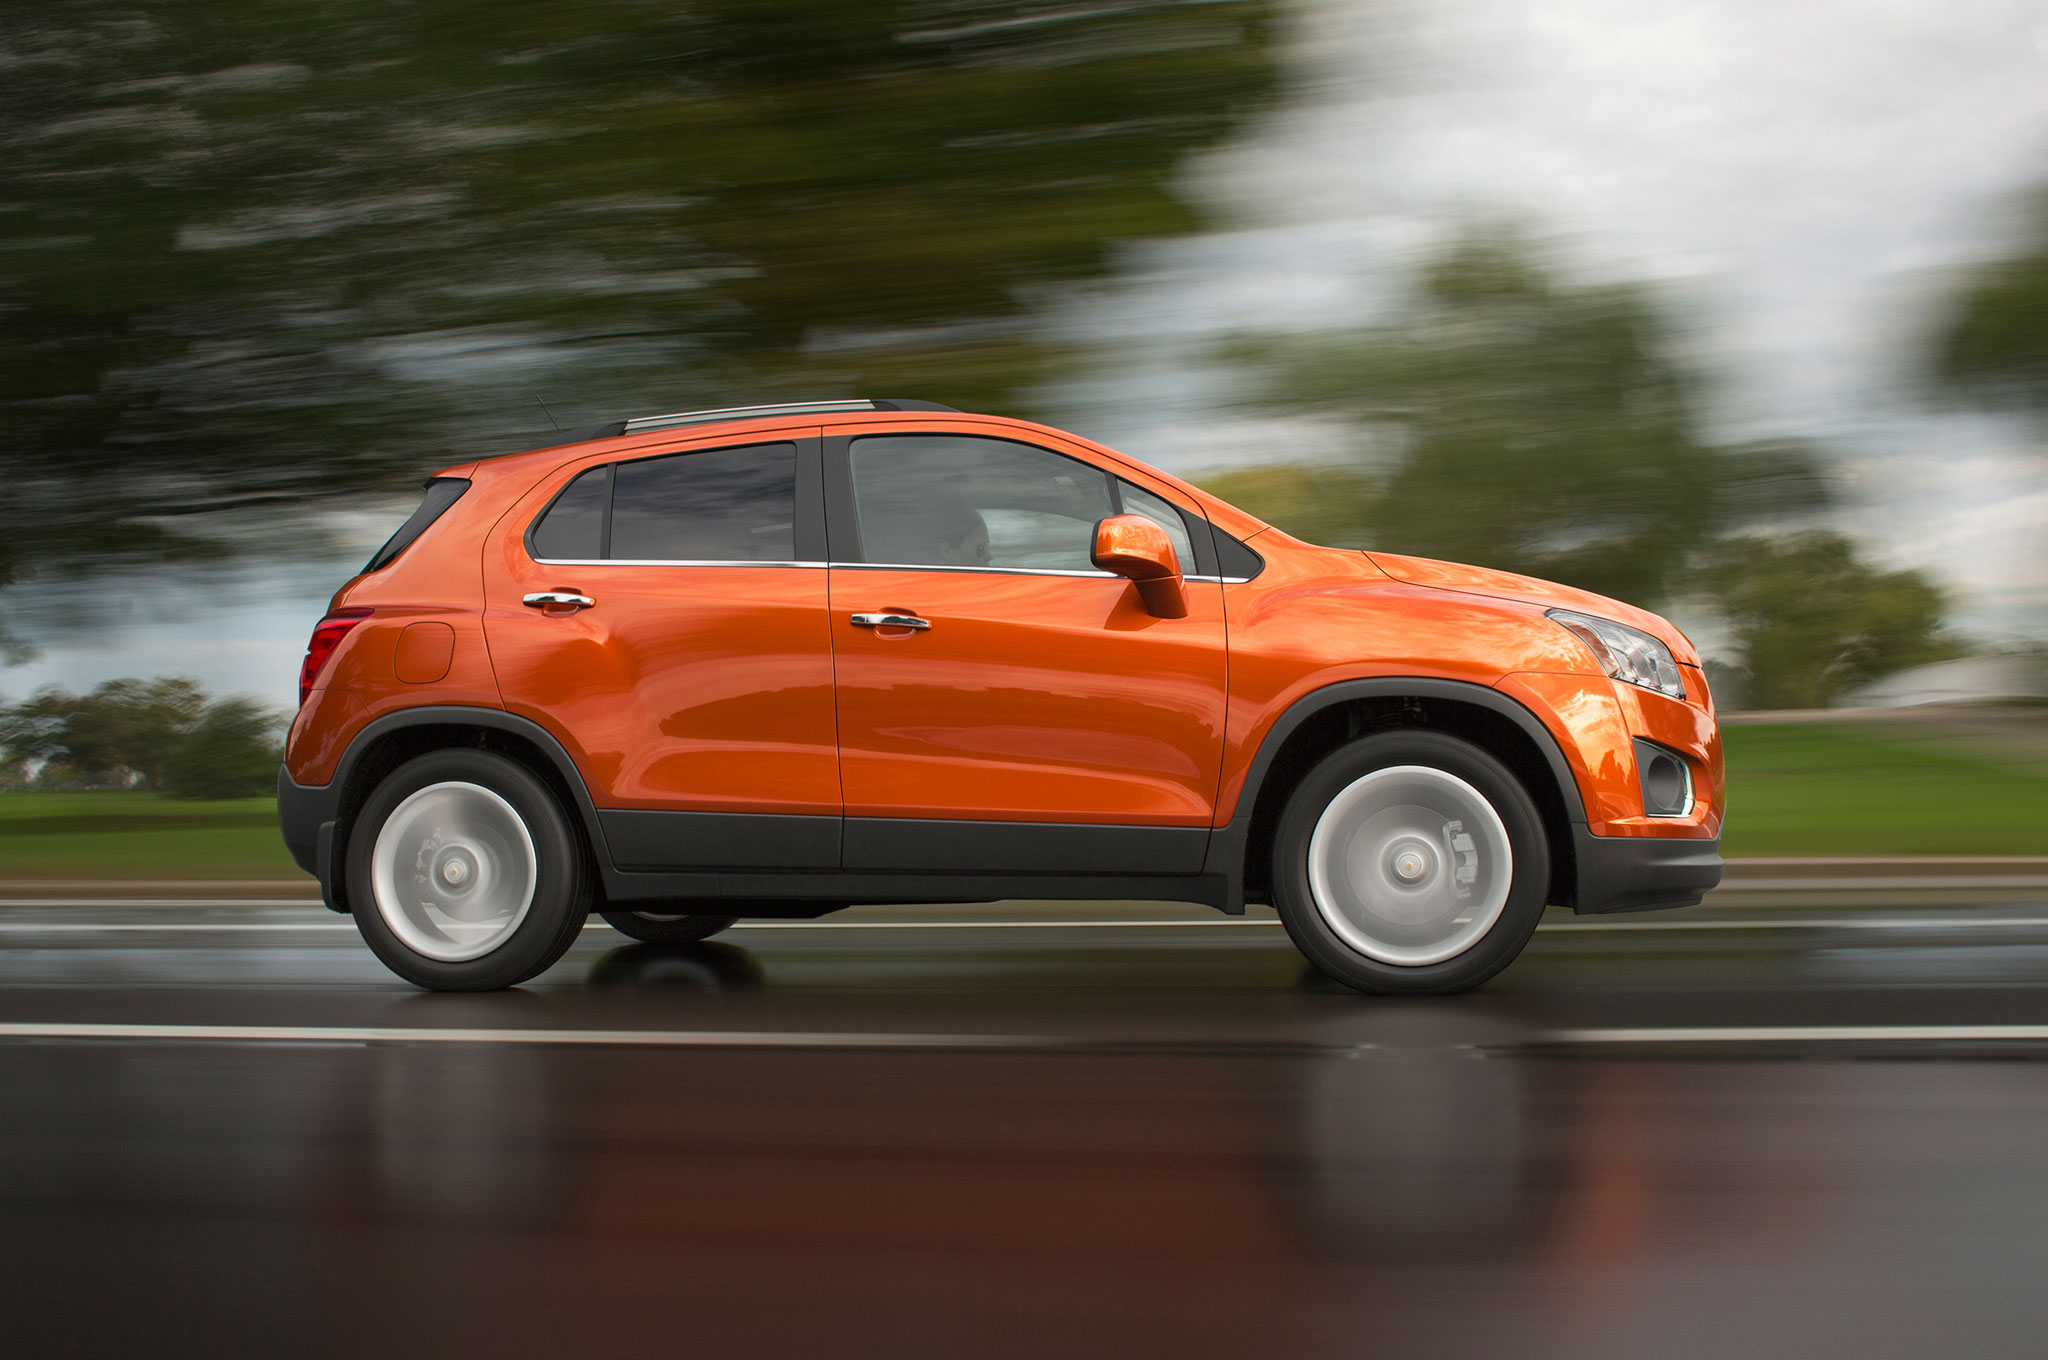 The Top Ten Cheapest 2015 All-Wheel-Drive Cars